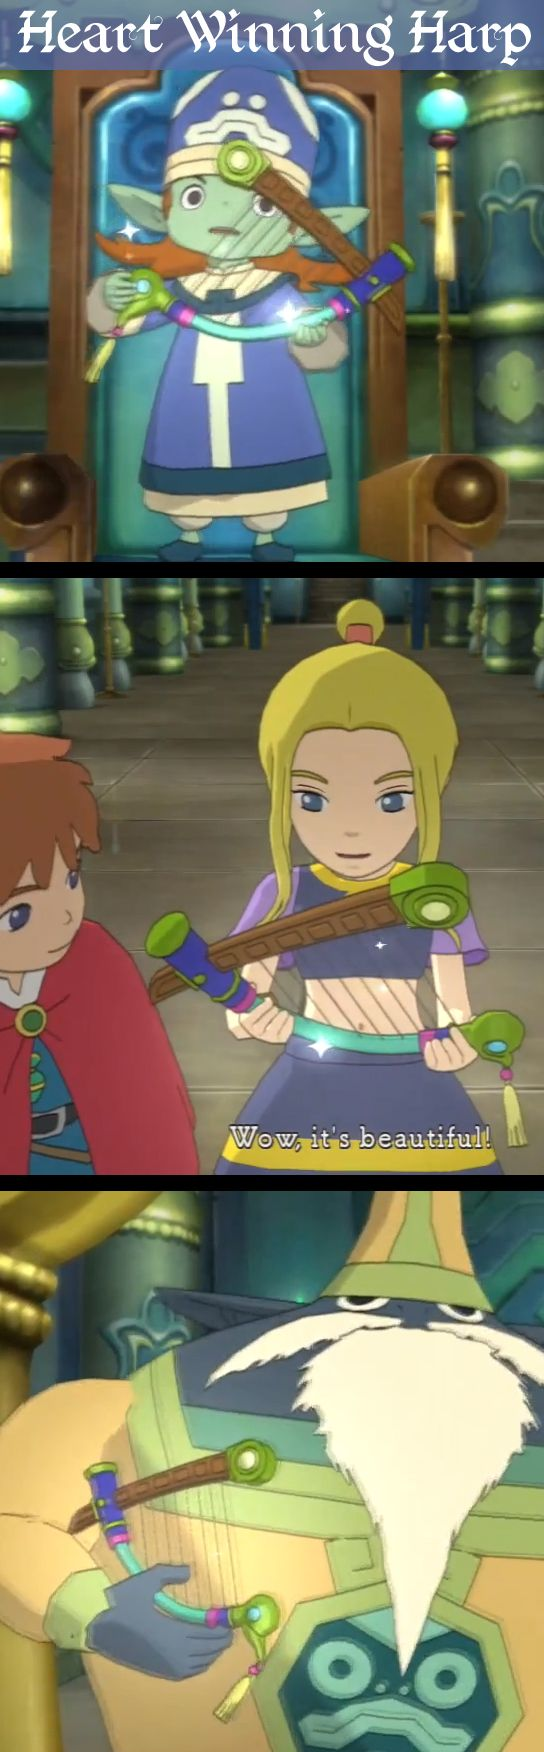 Ni No Kuni: Wrath of the White Witch - Esther's first harp, the Heart Winning Harp, from Solomon and Umbopa in the Temple of Trials - #screenshot #screengrab #screencap